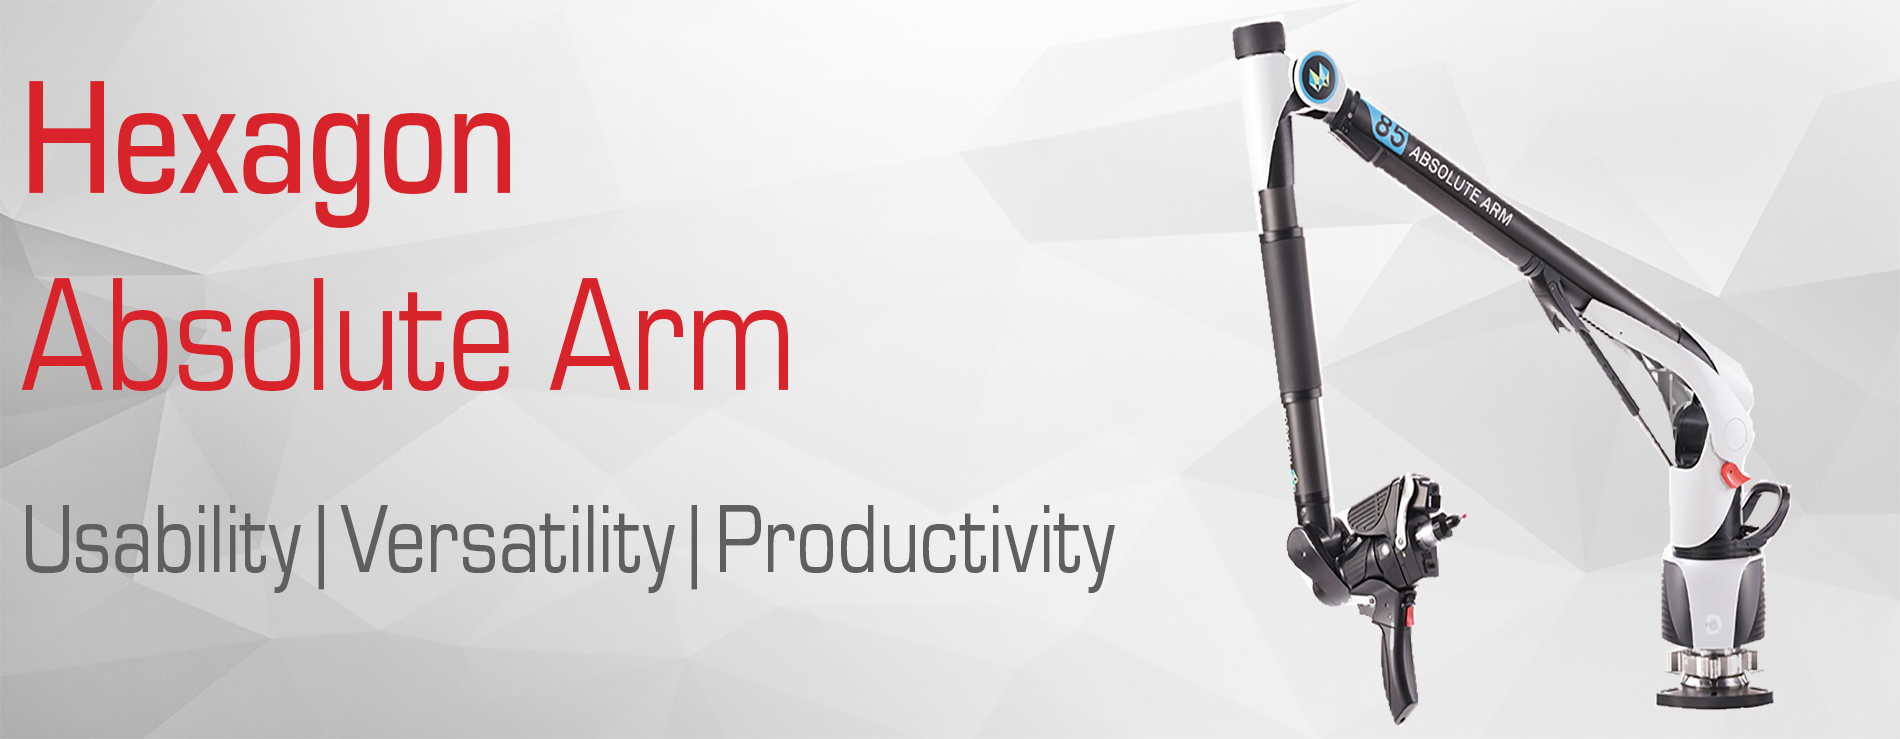 New Hexagon Absolute Arm